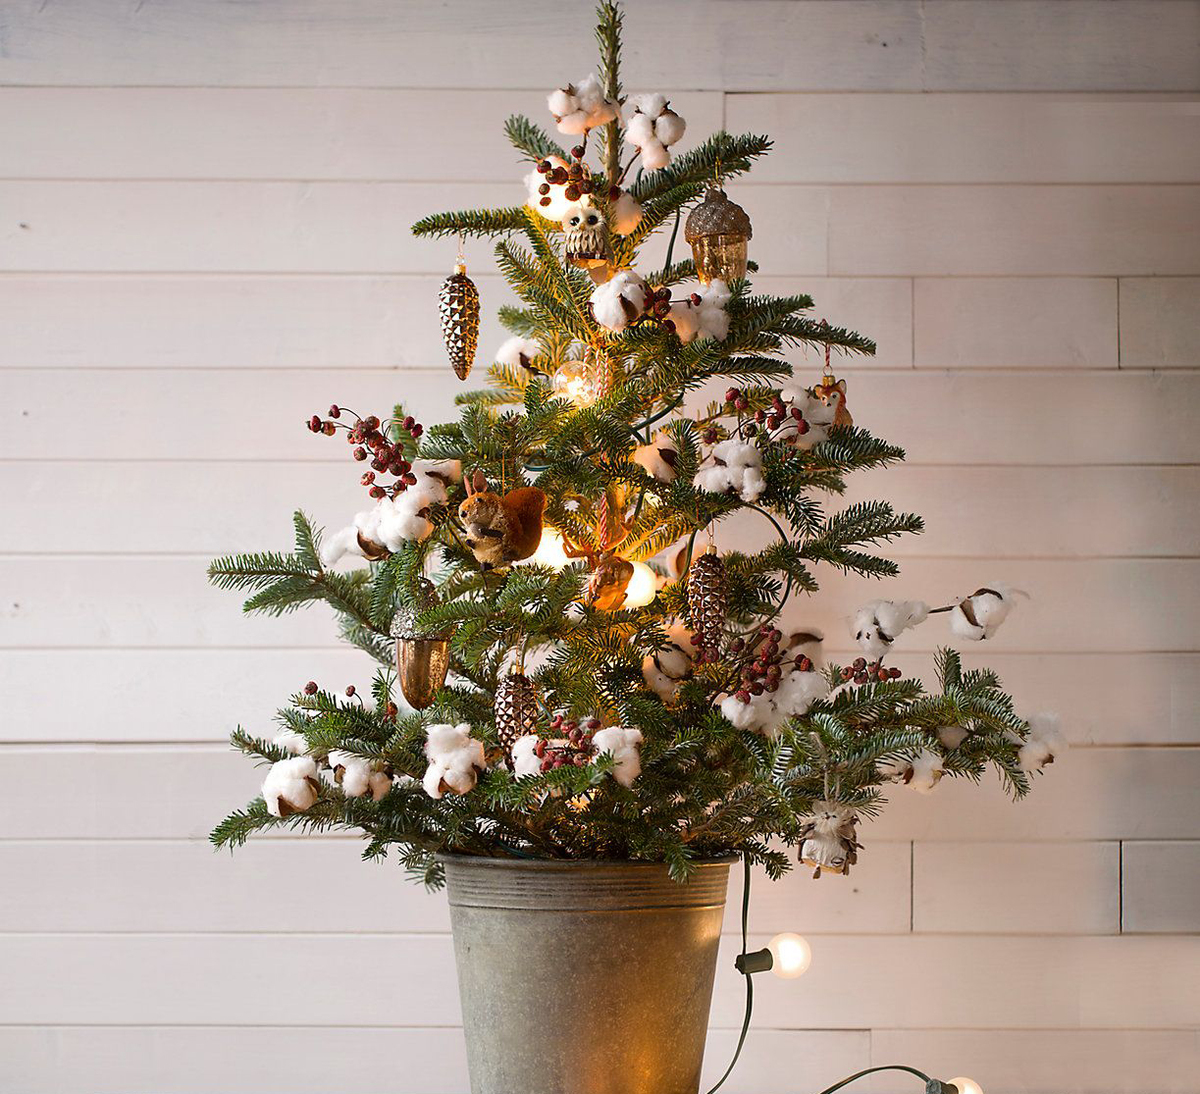 A small tree is dressed with nature-inspired decorations.